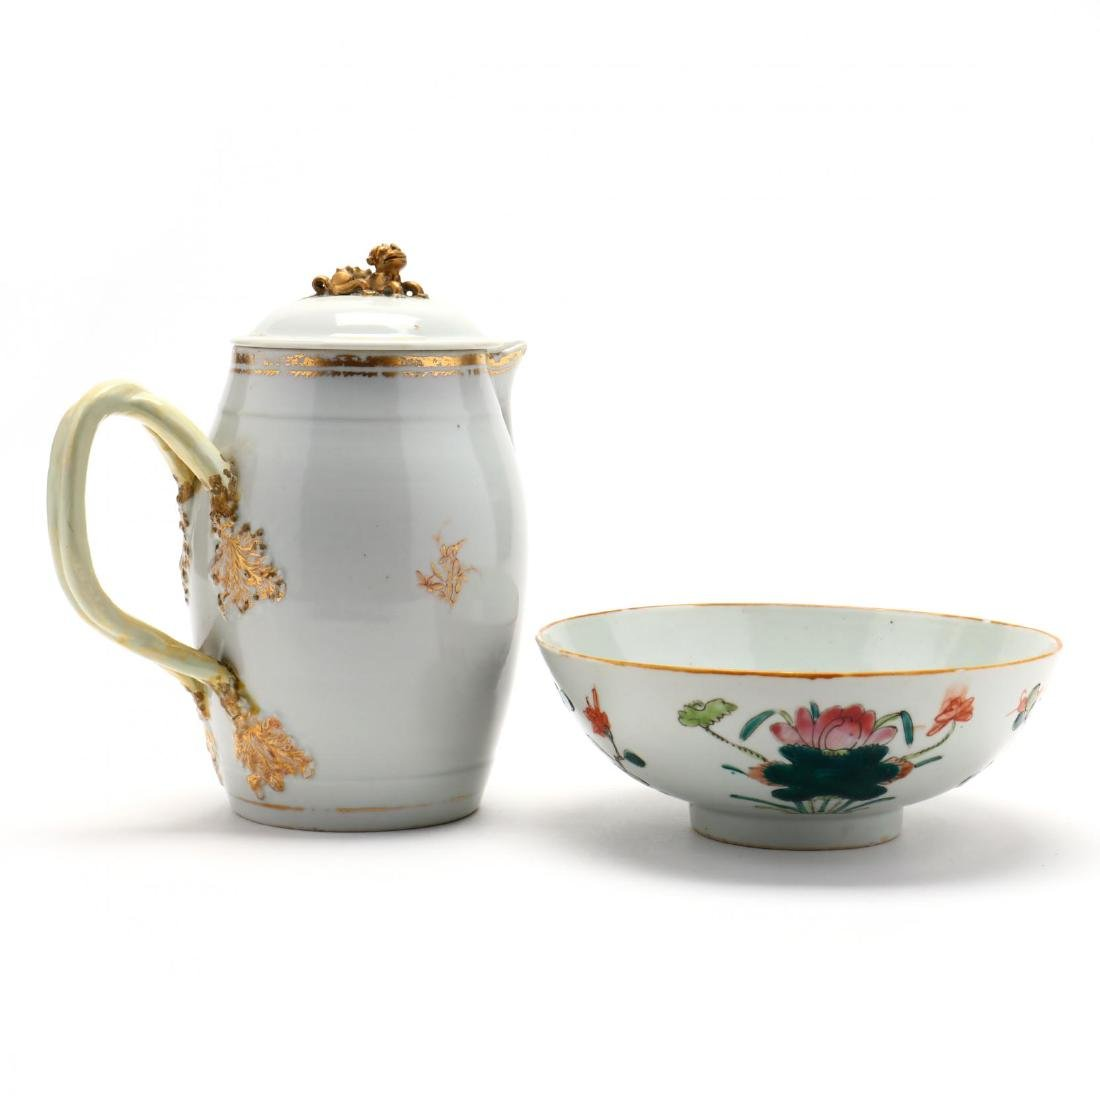 Antique Chinese Export Pitcher and Bowl